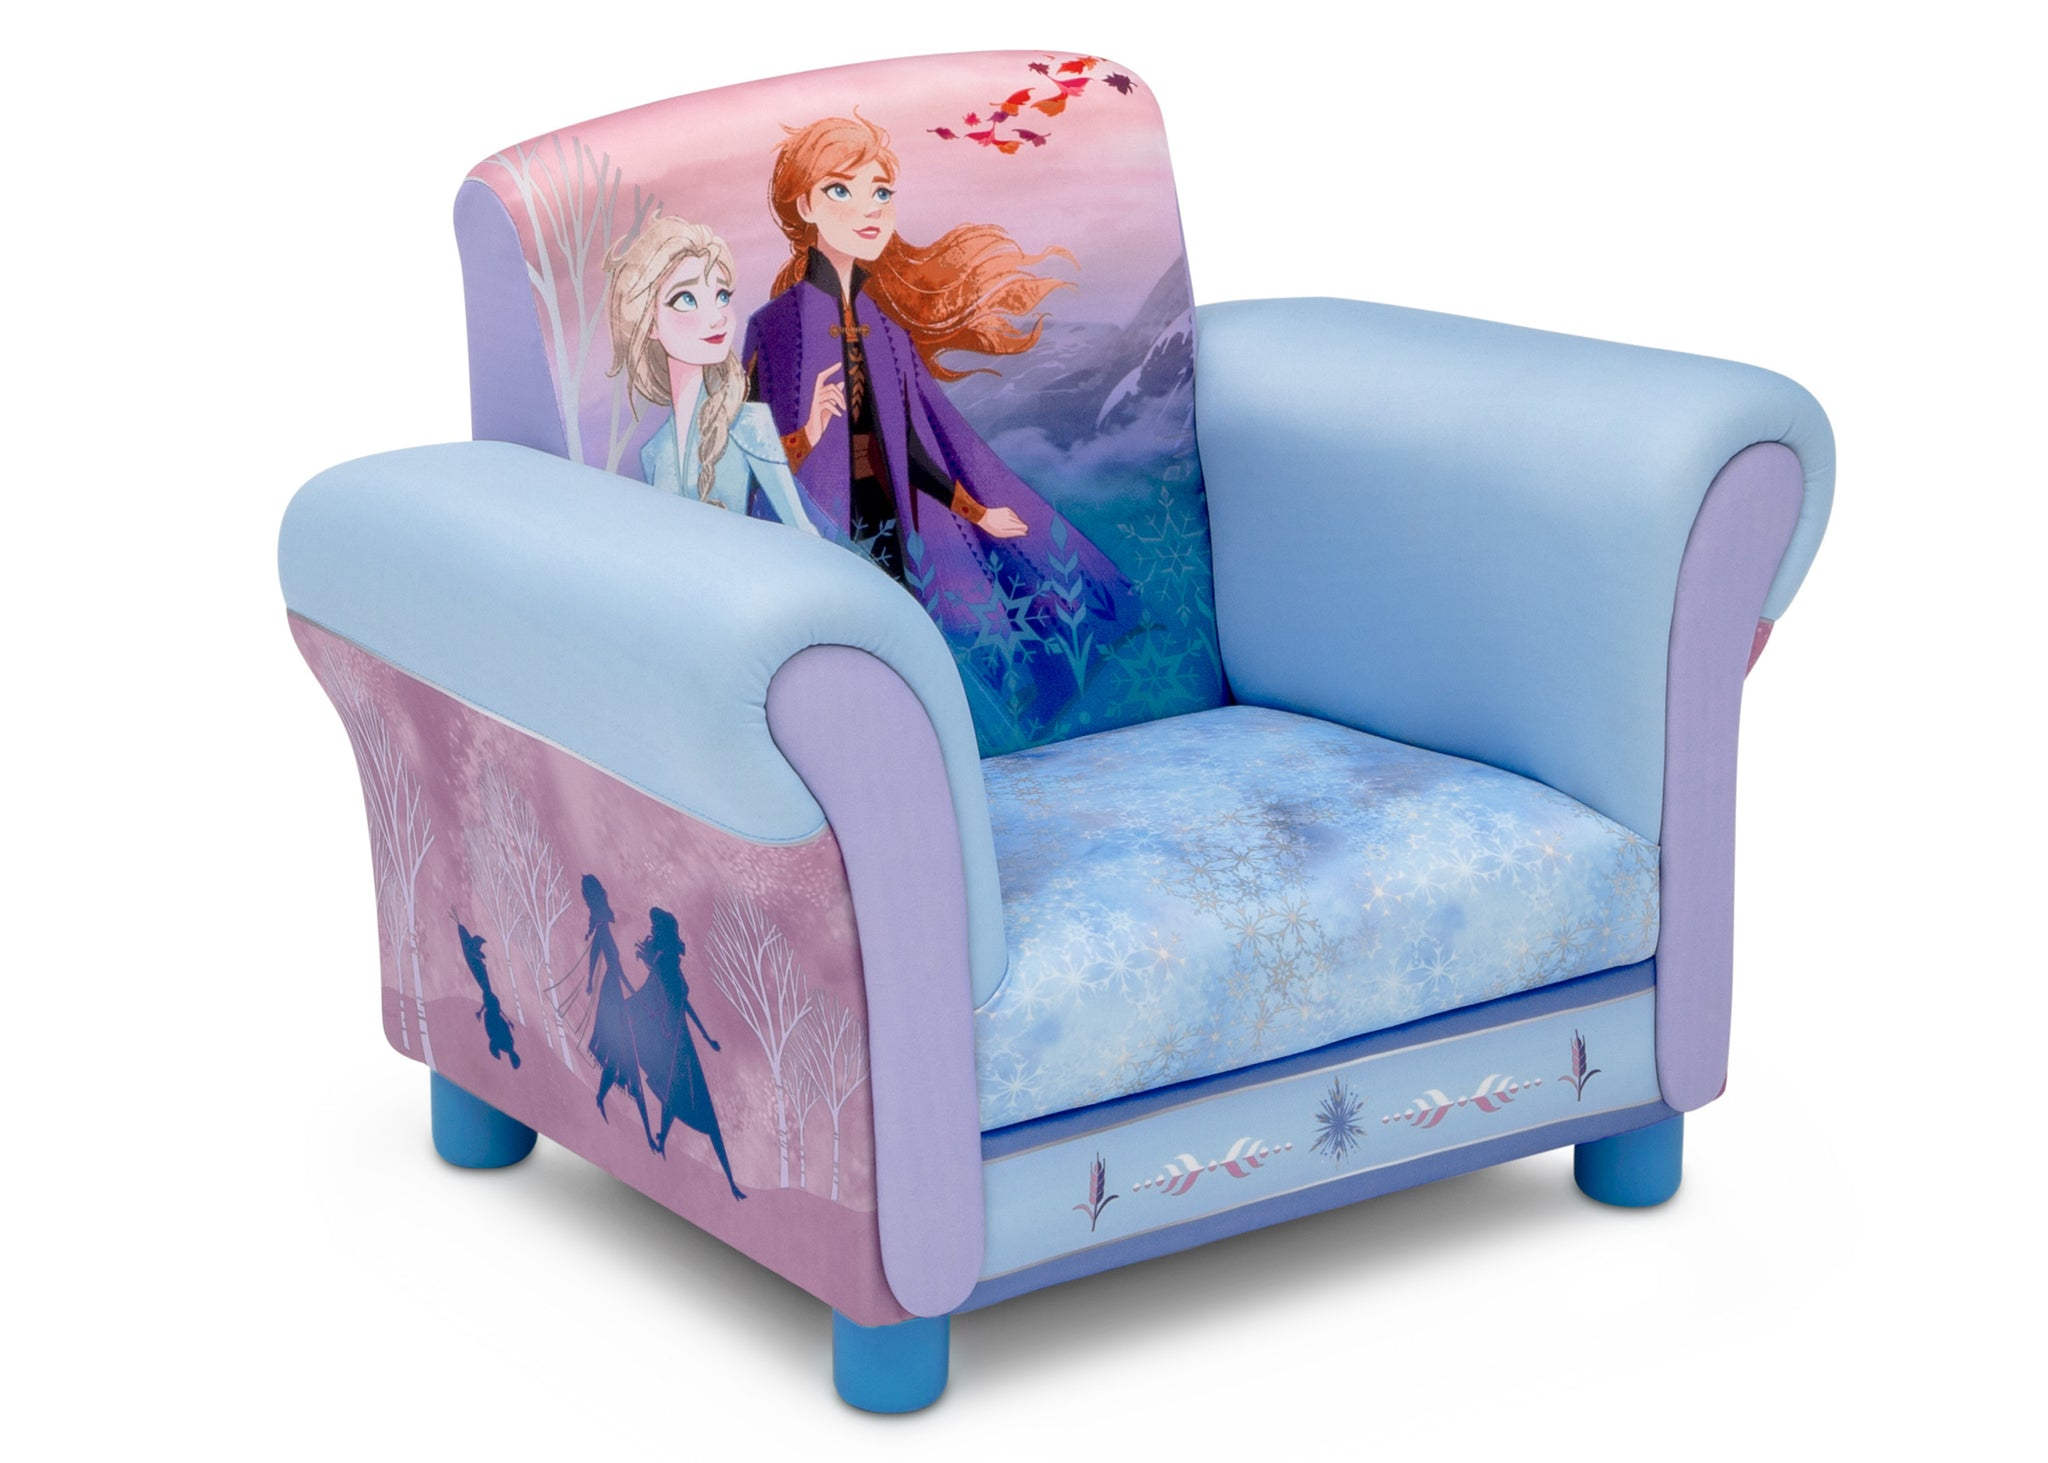 Delta Children Frozen II (1098) Upholstered Chair, Right Silo View Frozen(1098)